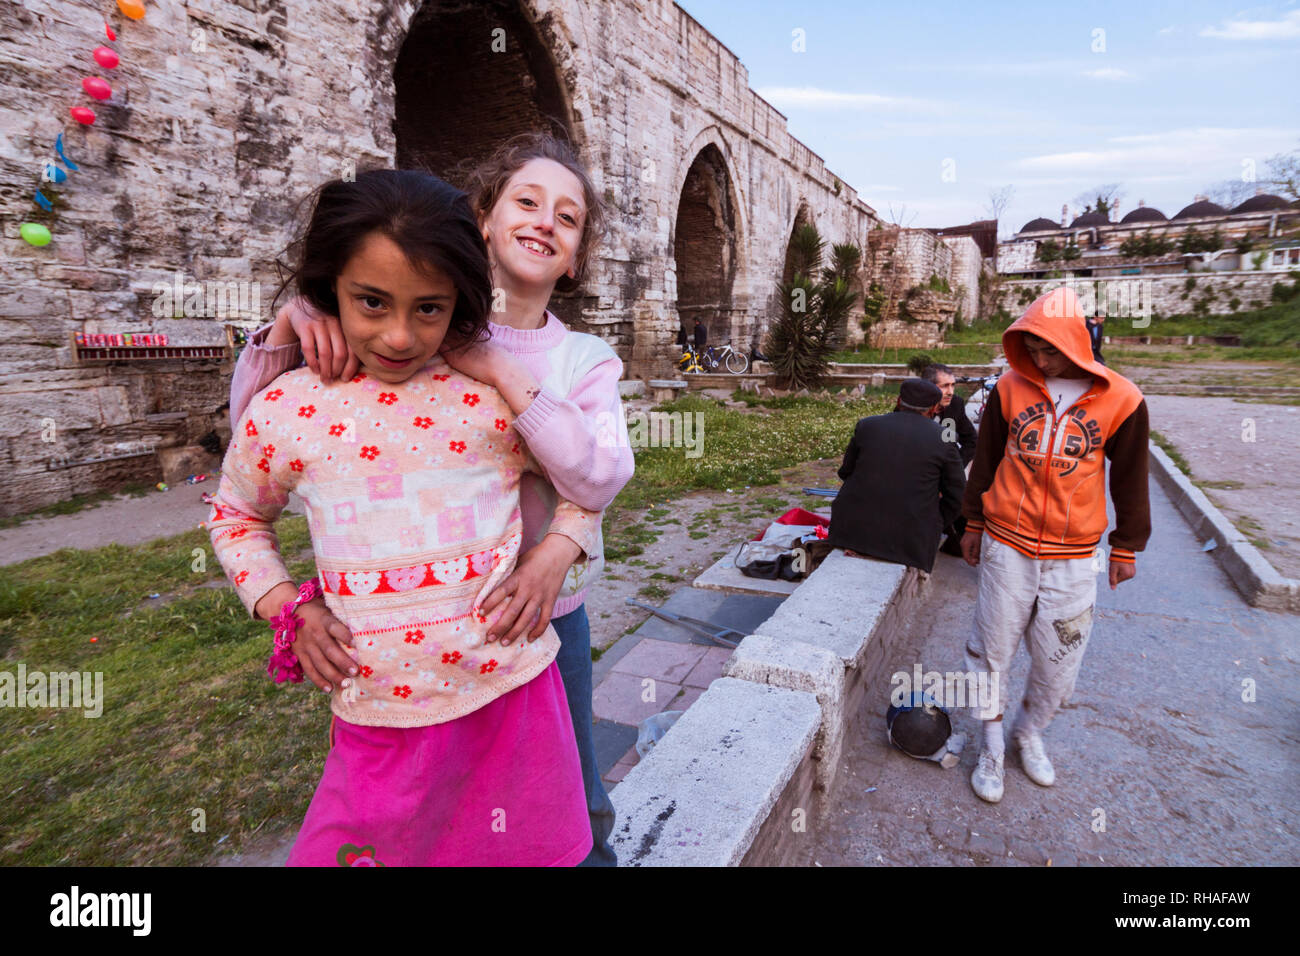 Istanbul, Turkey : Daily life scene under the Aqueduct of Valens, a Roman aqueduct which was the major water-providing system of the Eastern Roman cap - Stock Image